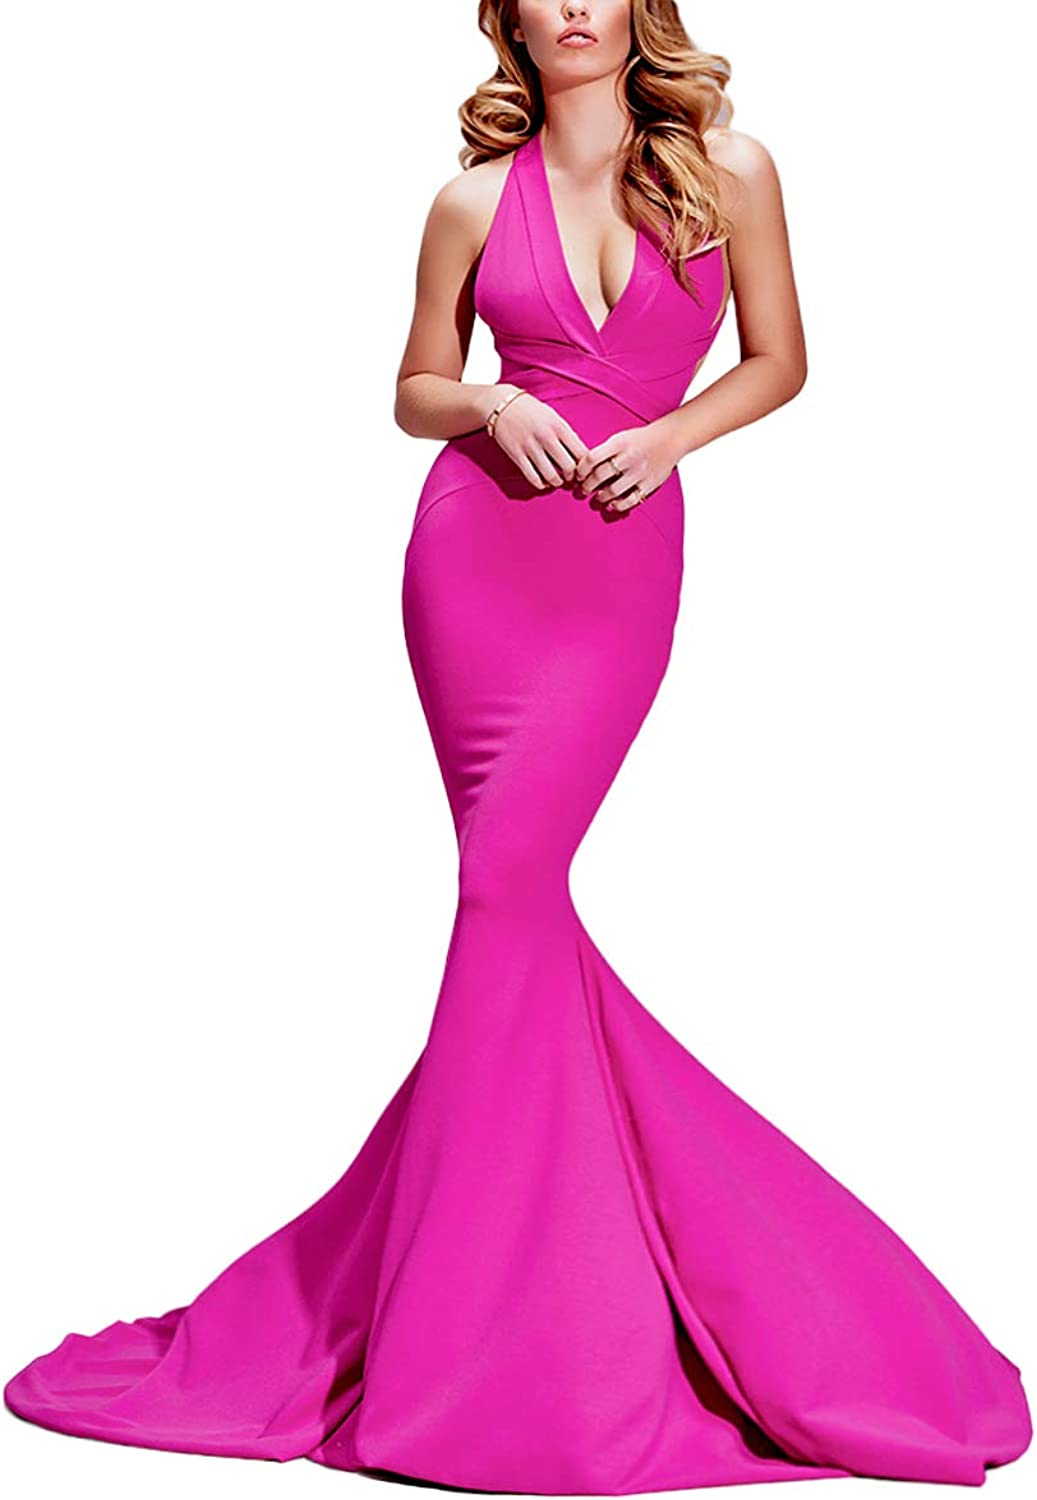 Yisha Bello Women's Sexy VNeck Mermaid Pro Dress Long Backless Evening Party Gowns